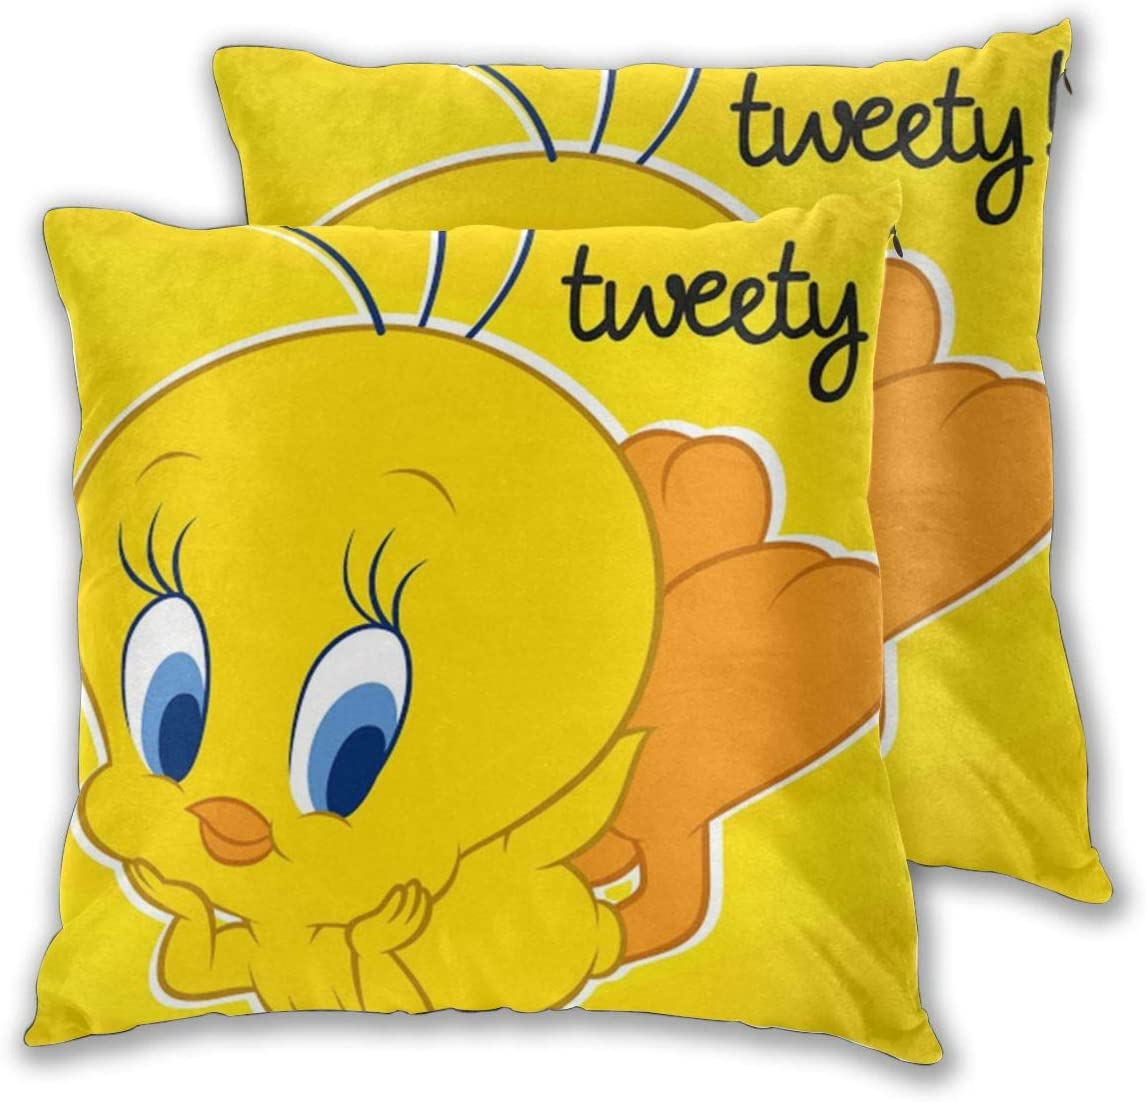 Tw-Eety Bird Throw Pillow Covers Set of 2 Cushion Case 18